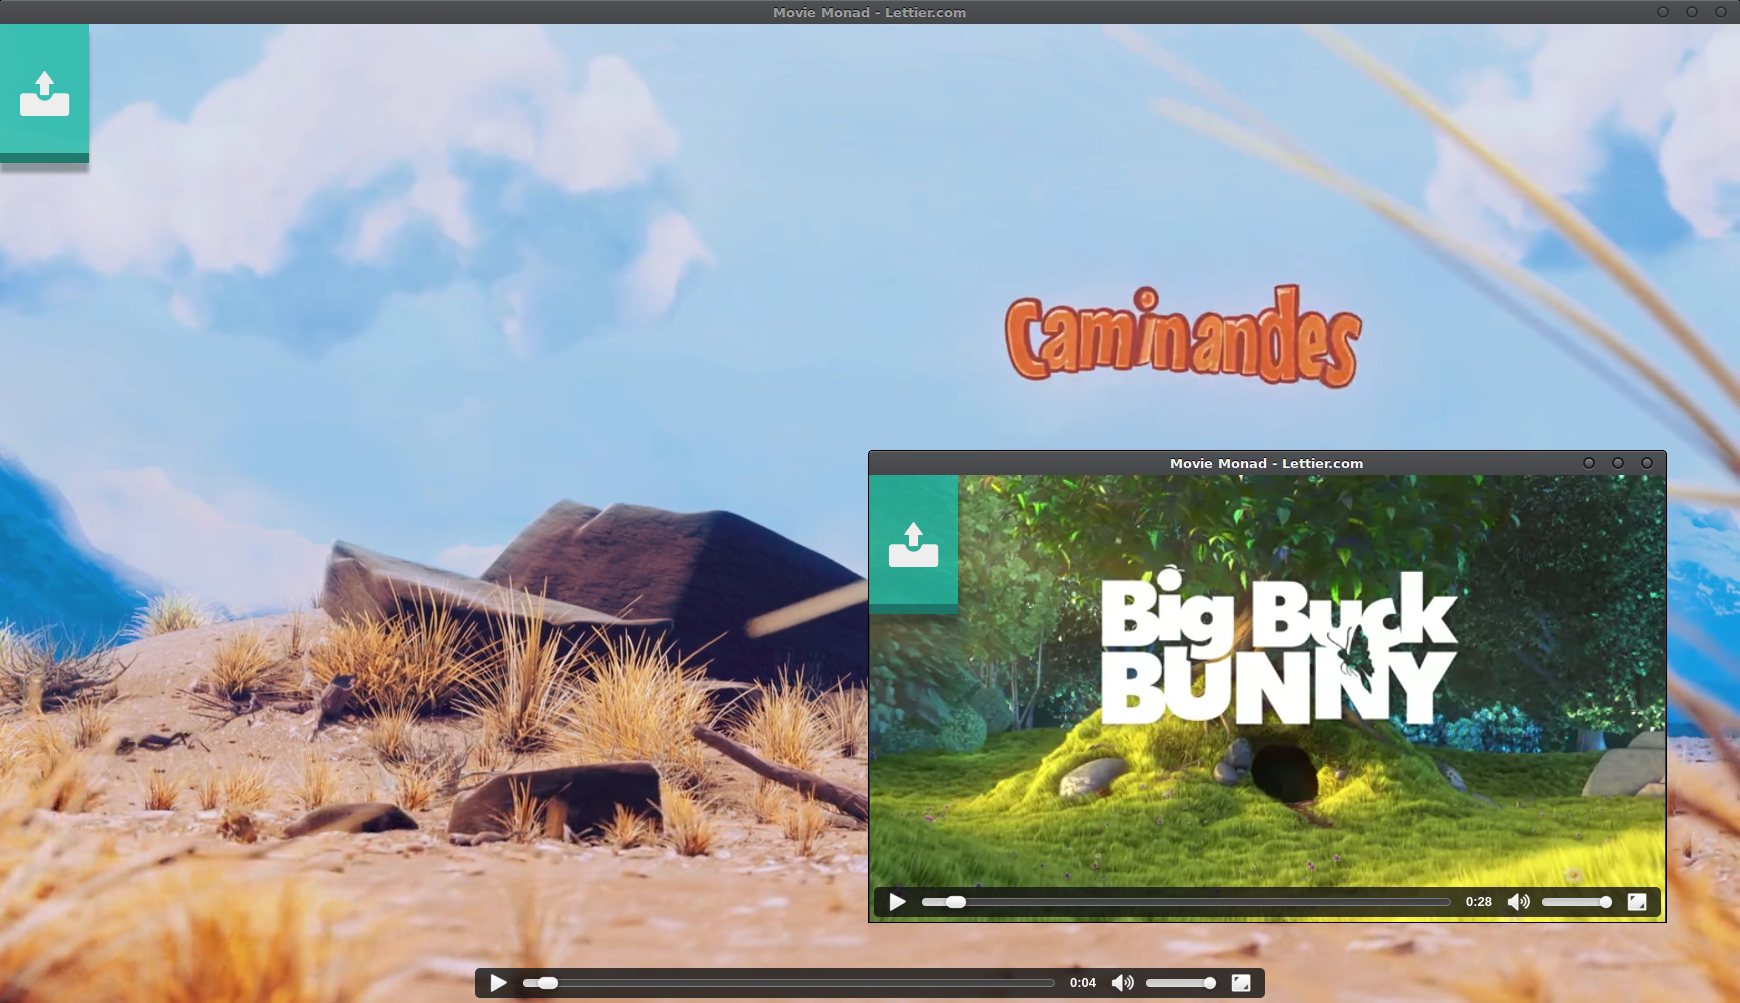 Caminandes and Big Buck Bunny from Blender Cloud.